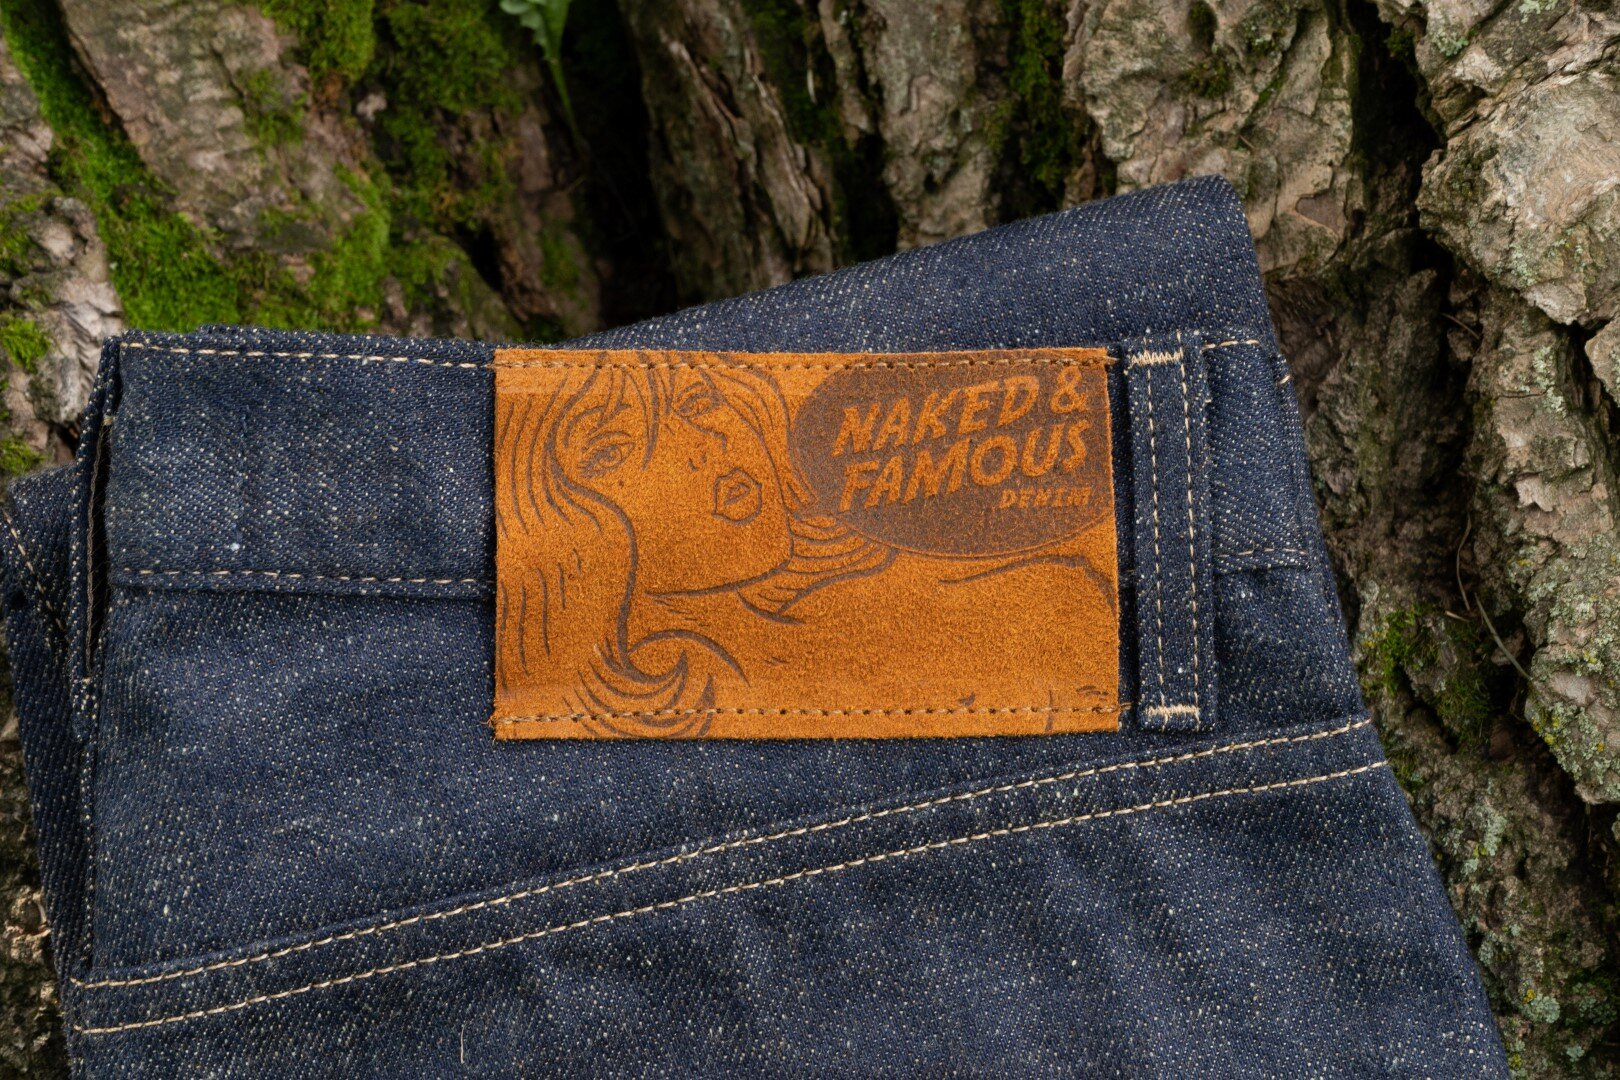 Huntsman Selvedge - Leather Patch